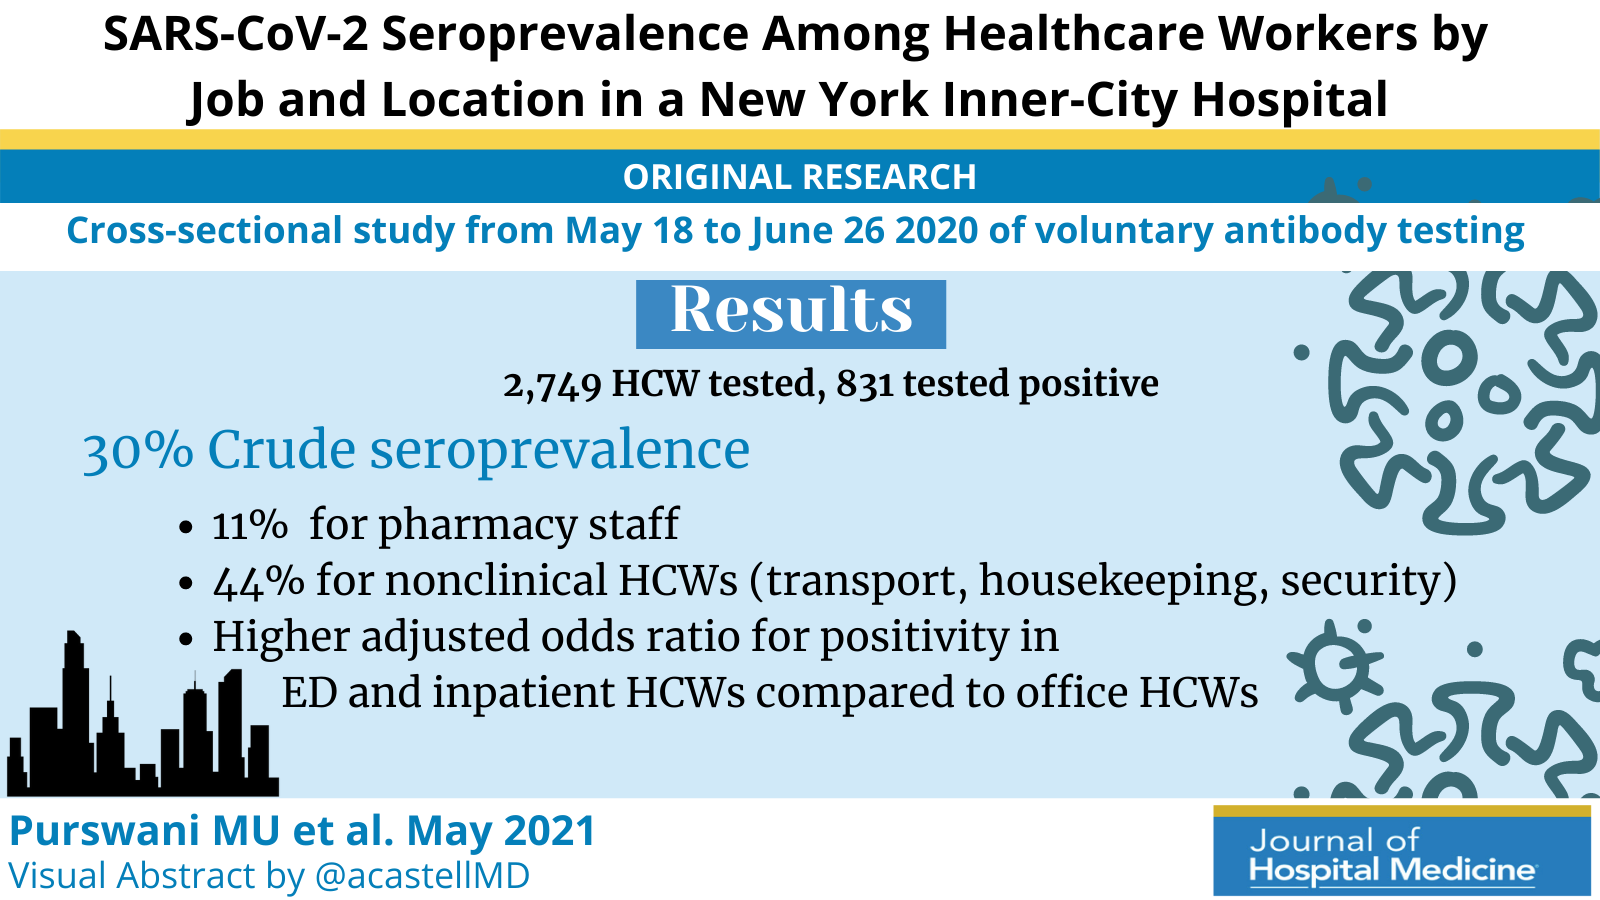 SARS-CoV-2 Seroprevalence Among Healthcare Workers by Job Function and Work Location in a New York Inner-City Hospital